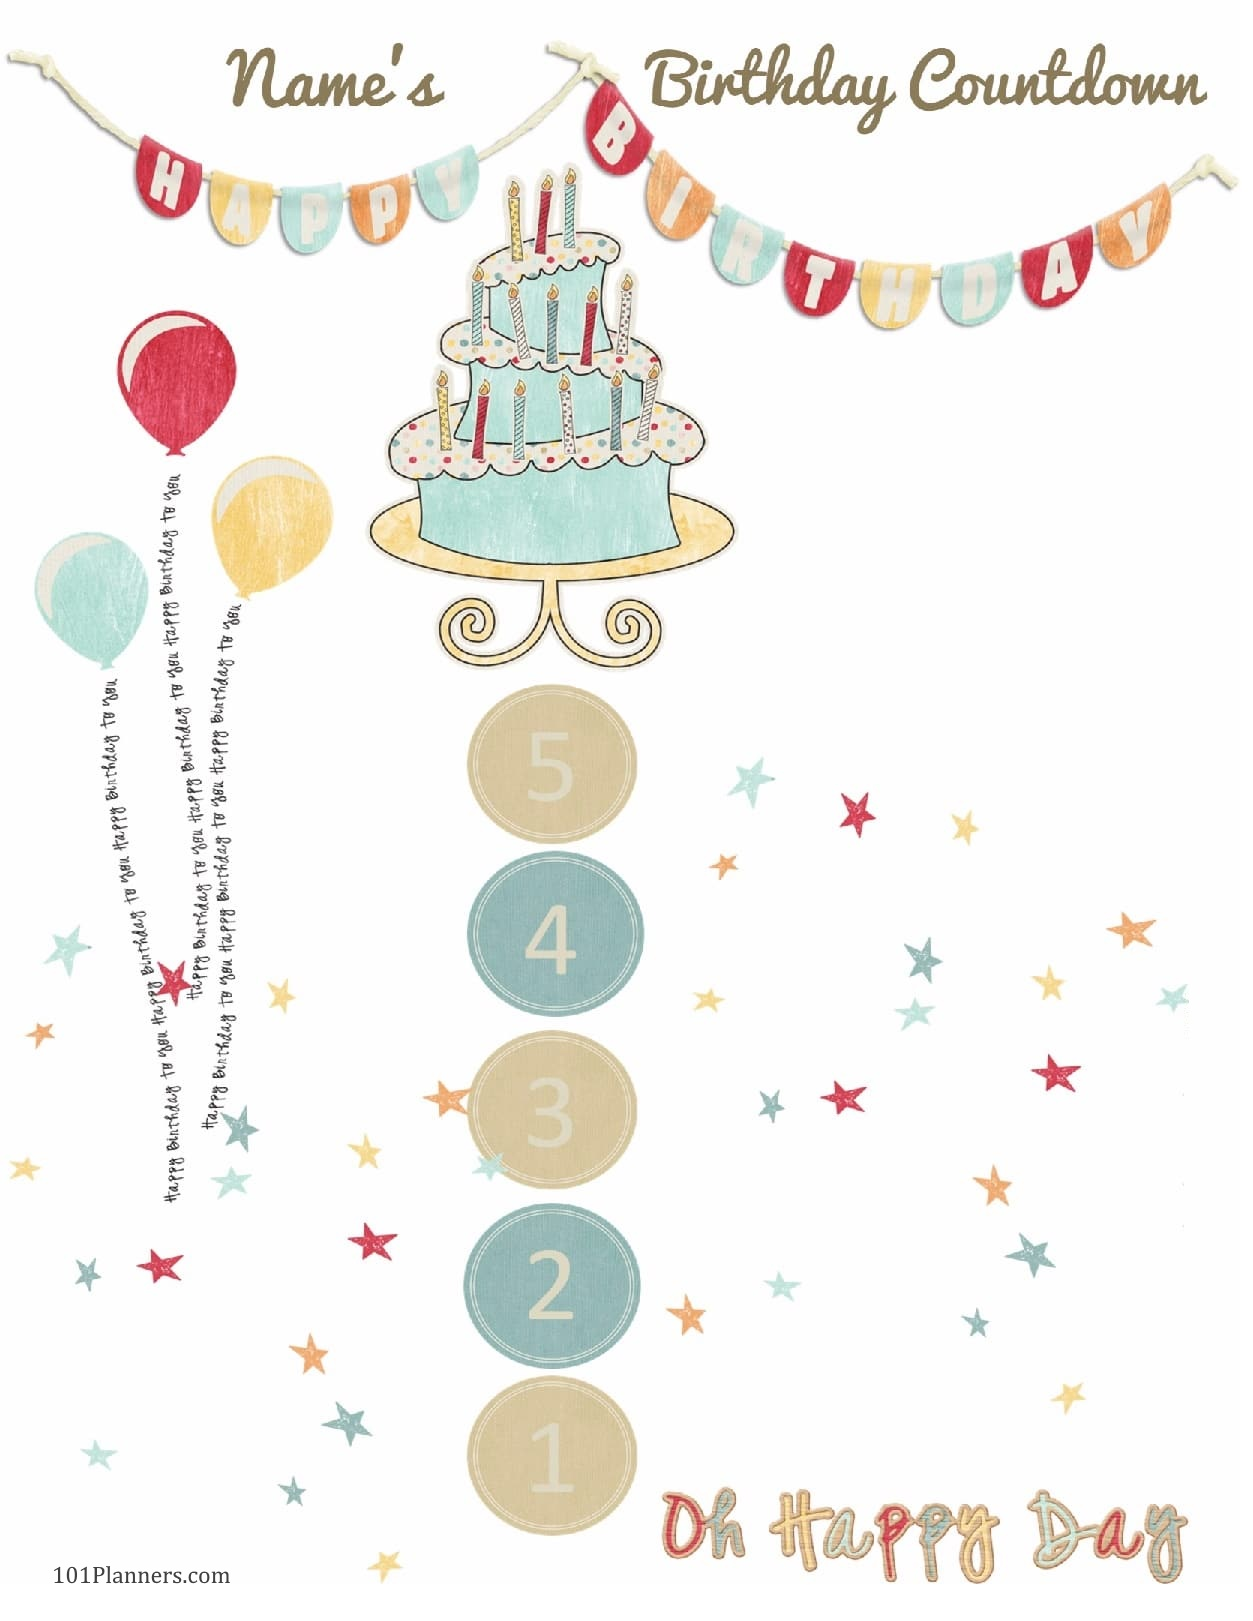 Free Printable Birthday Countdown Customize Online